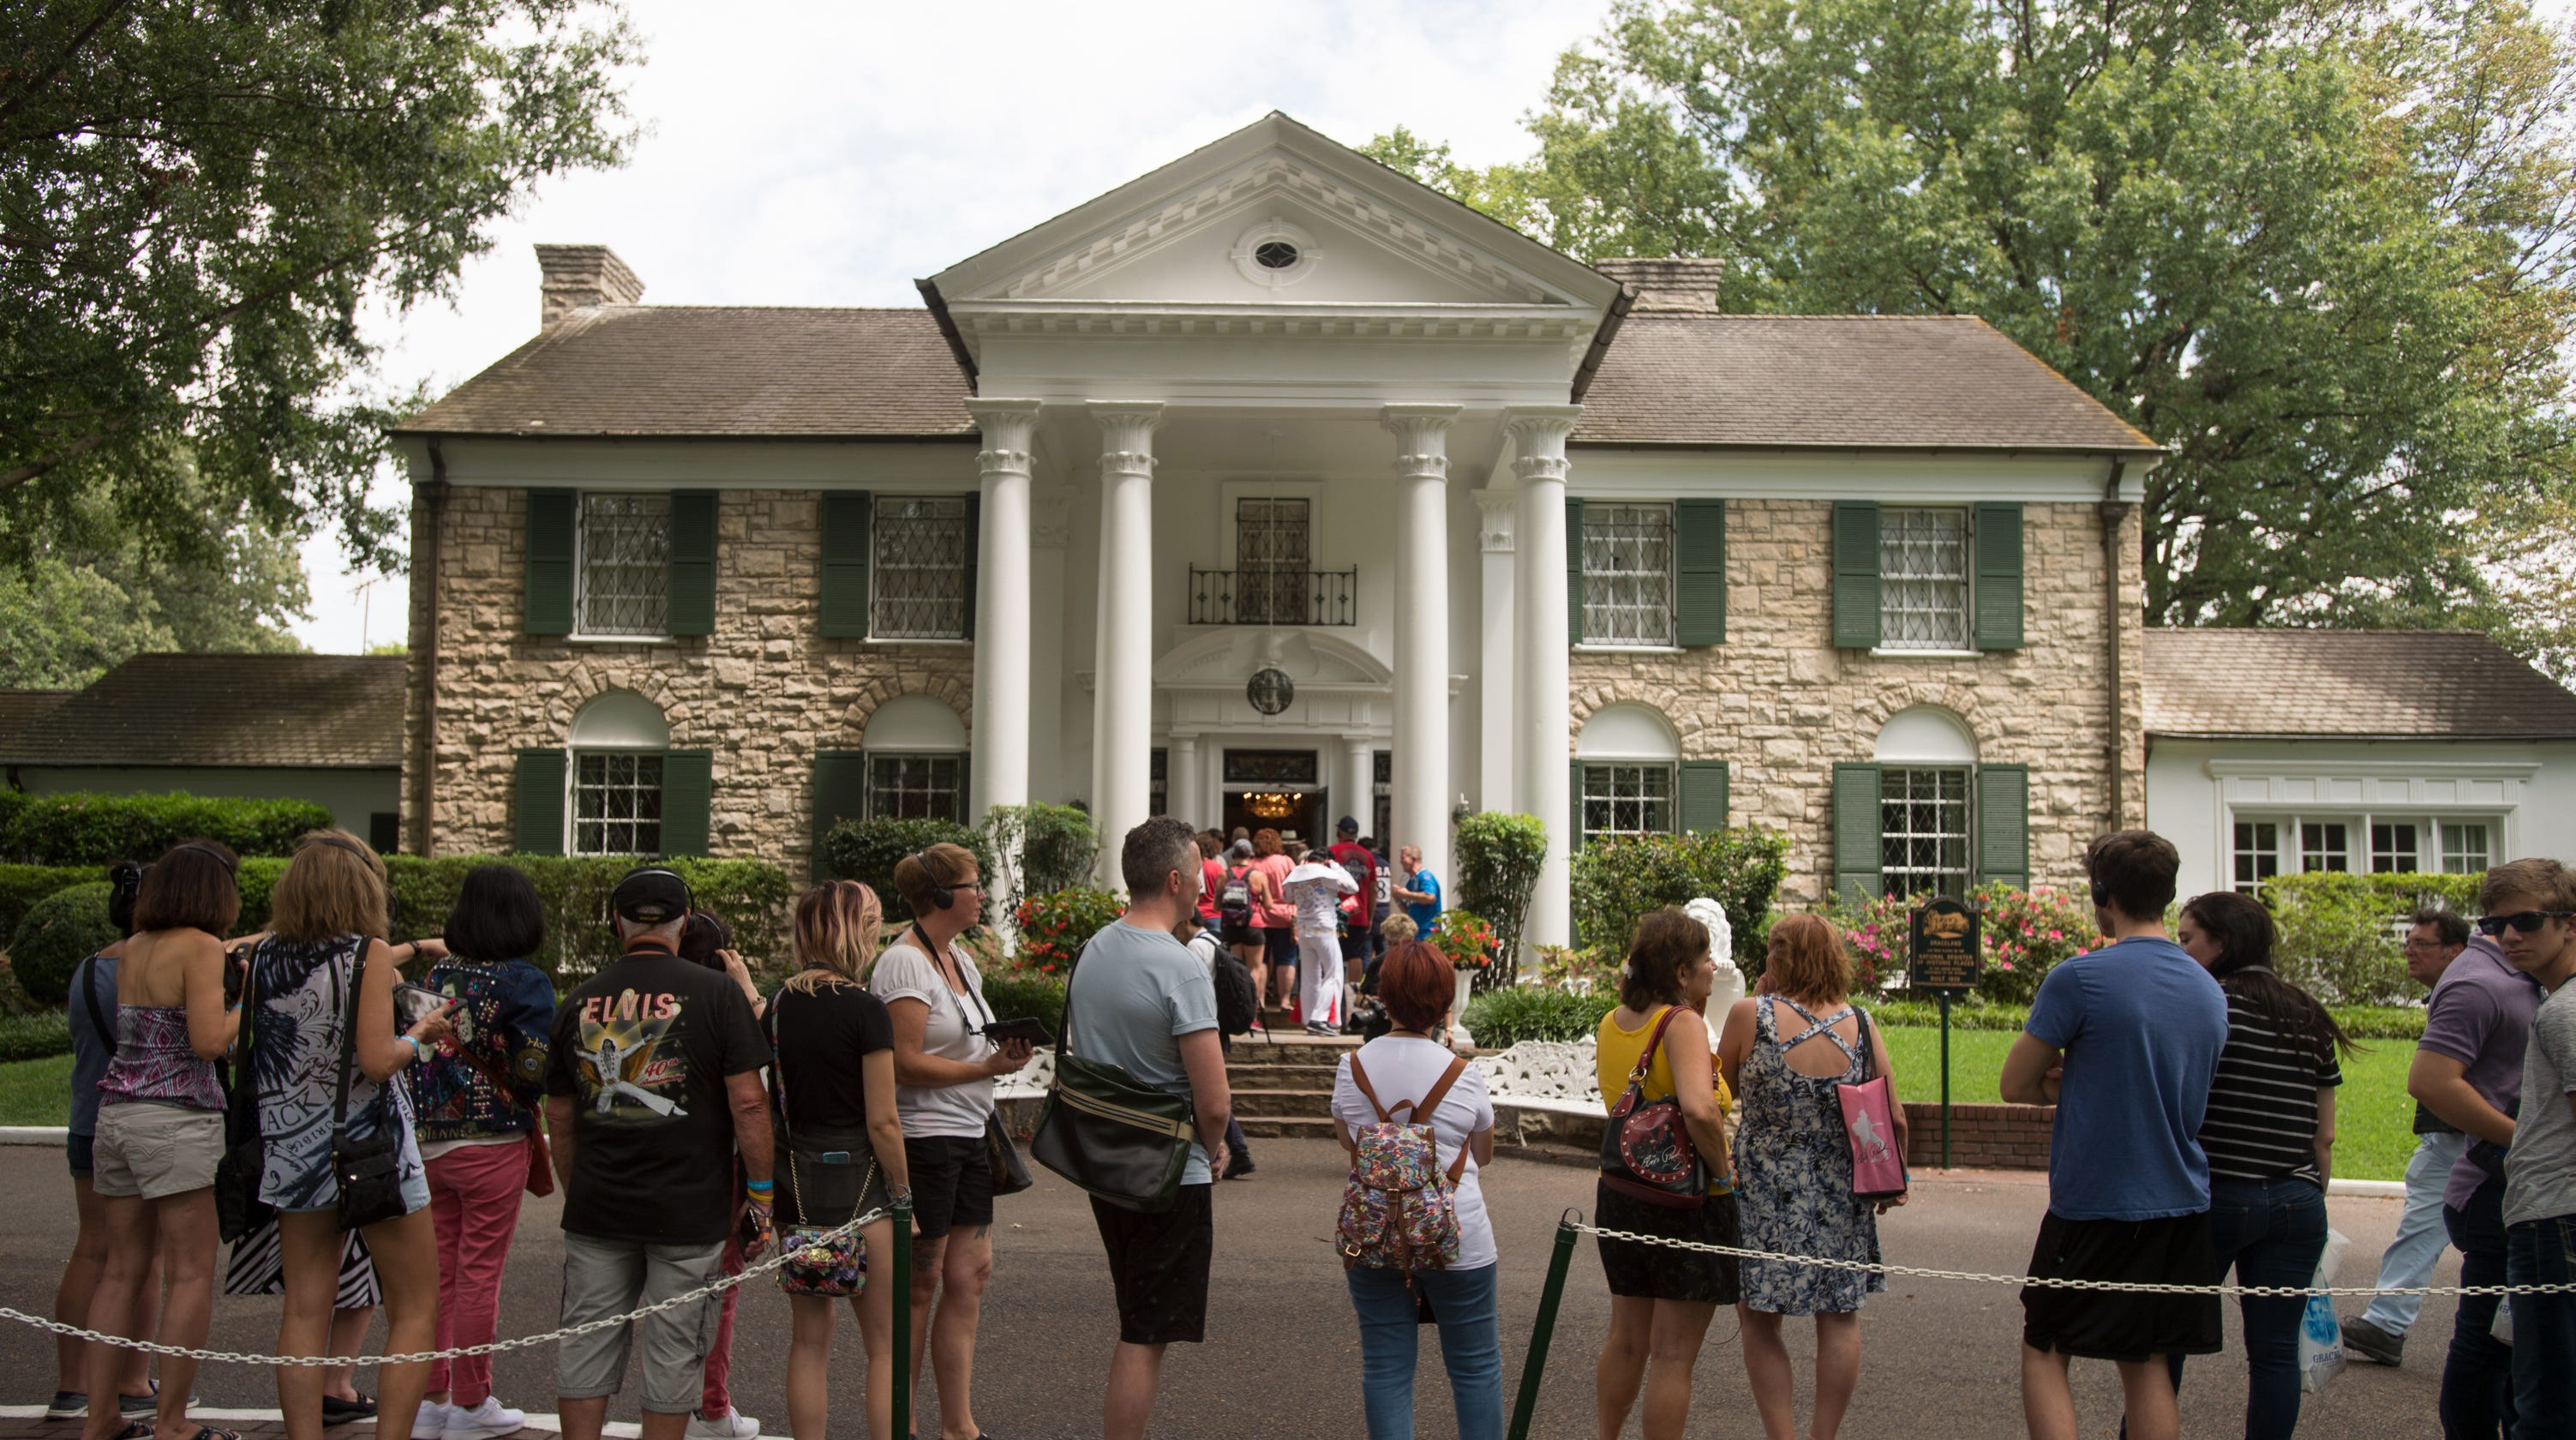 Coronavirus in Tennessee: Graceland to close temporarily